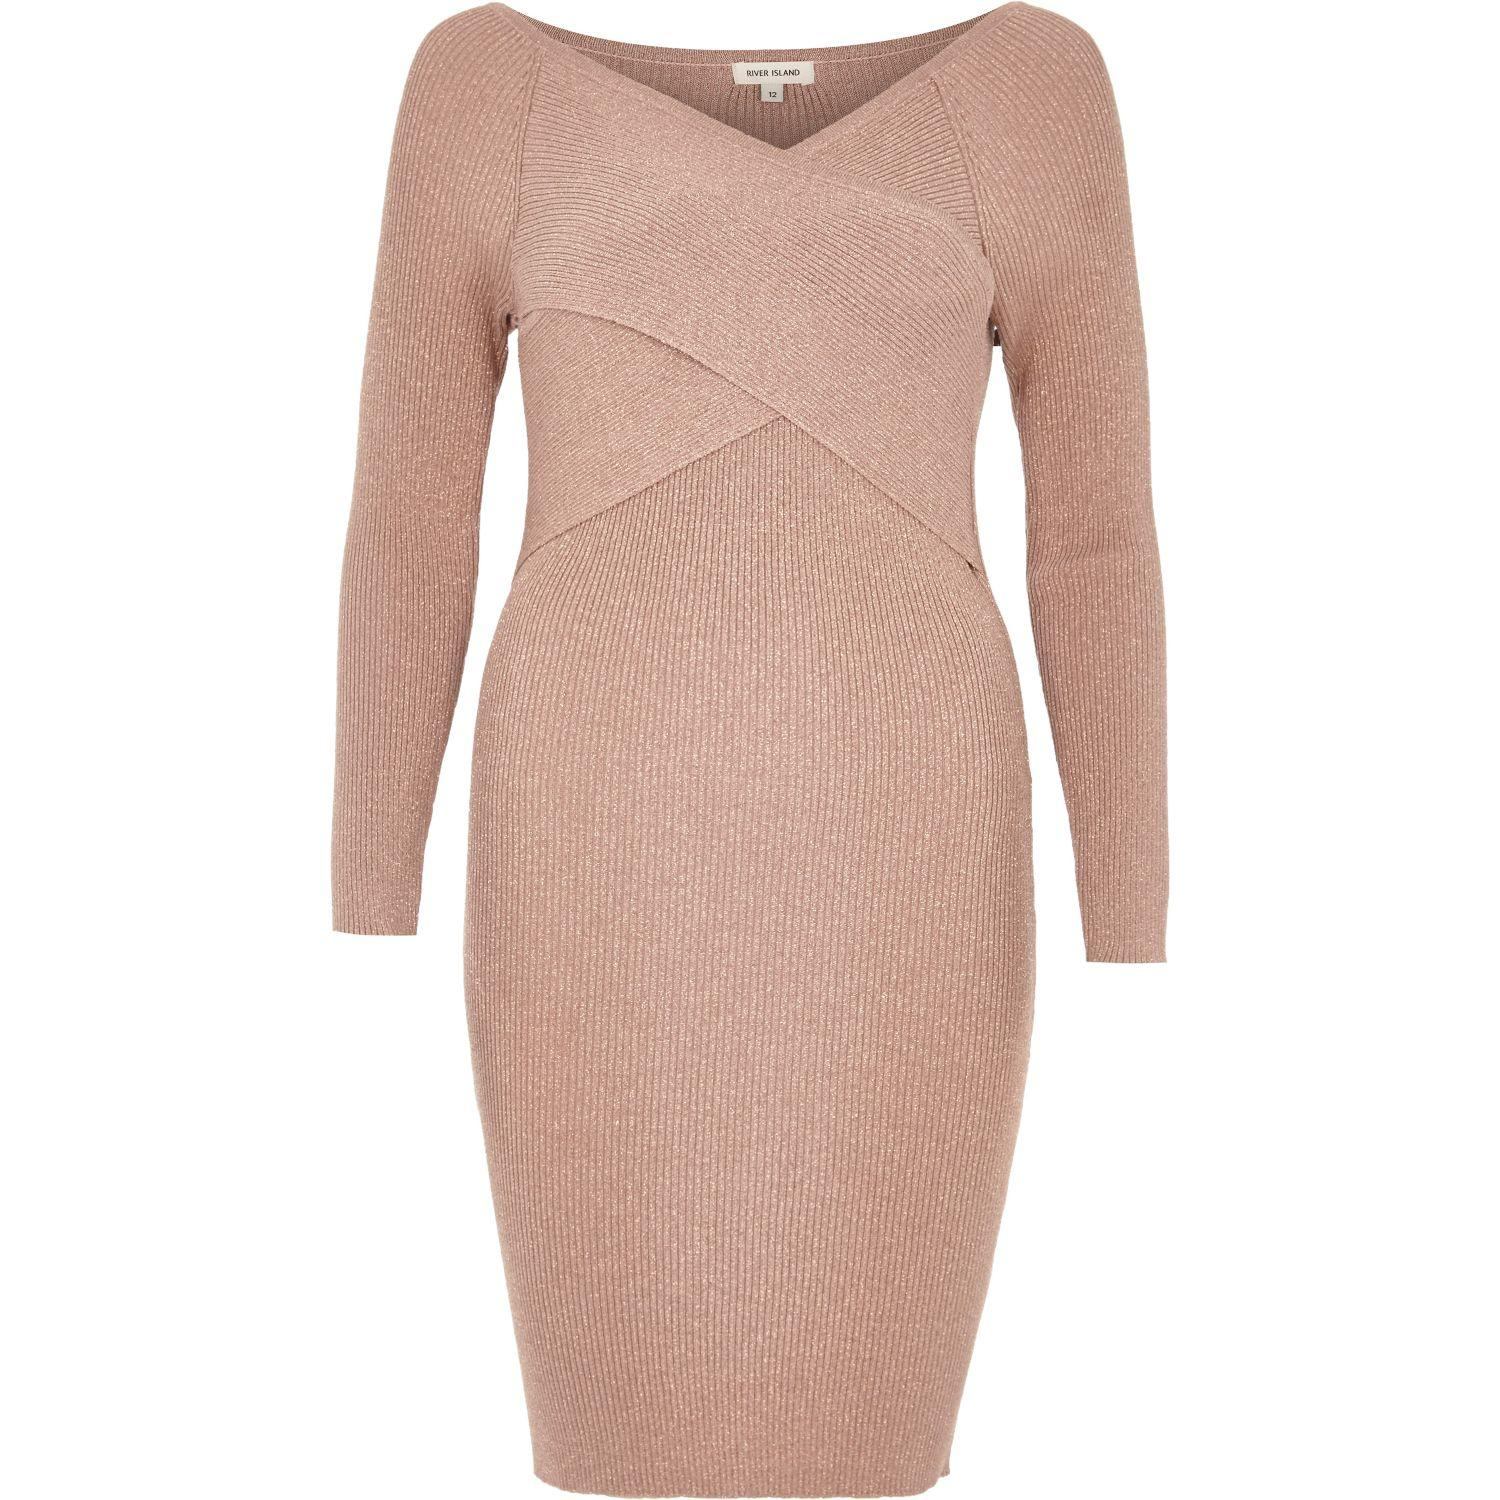 River Island Glitter Bodycon Dress - Oscar Fashion Review